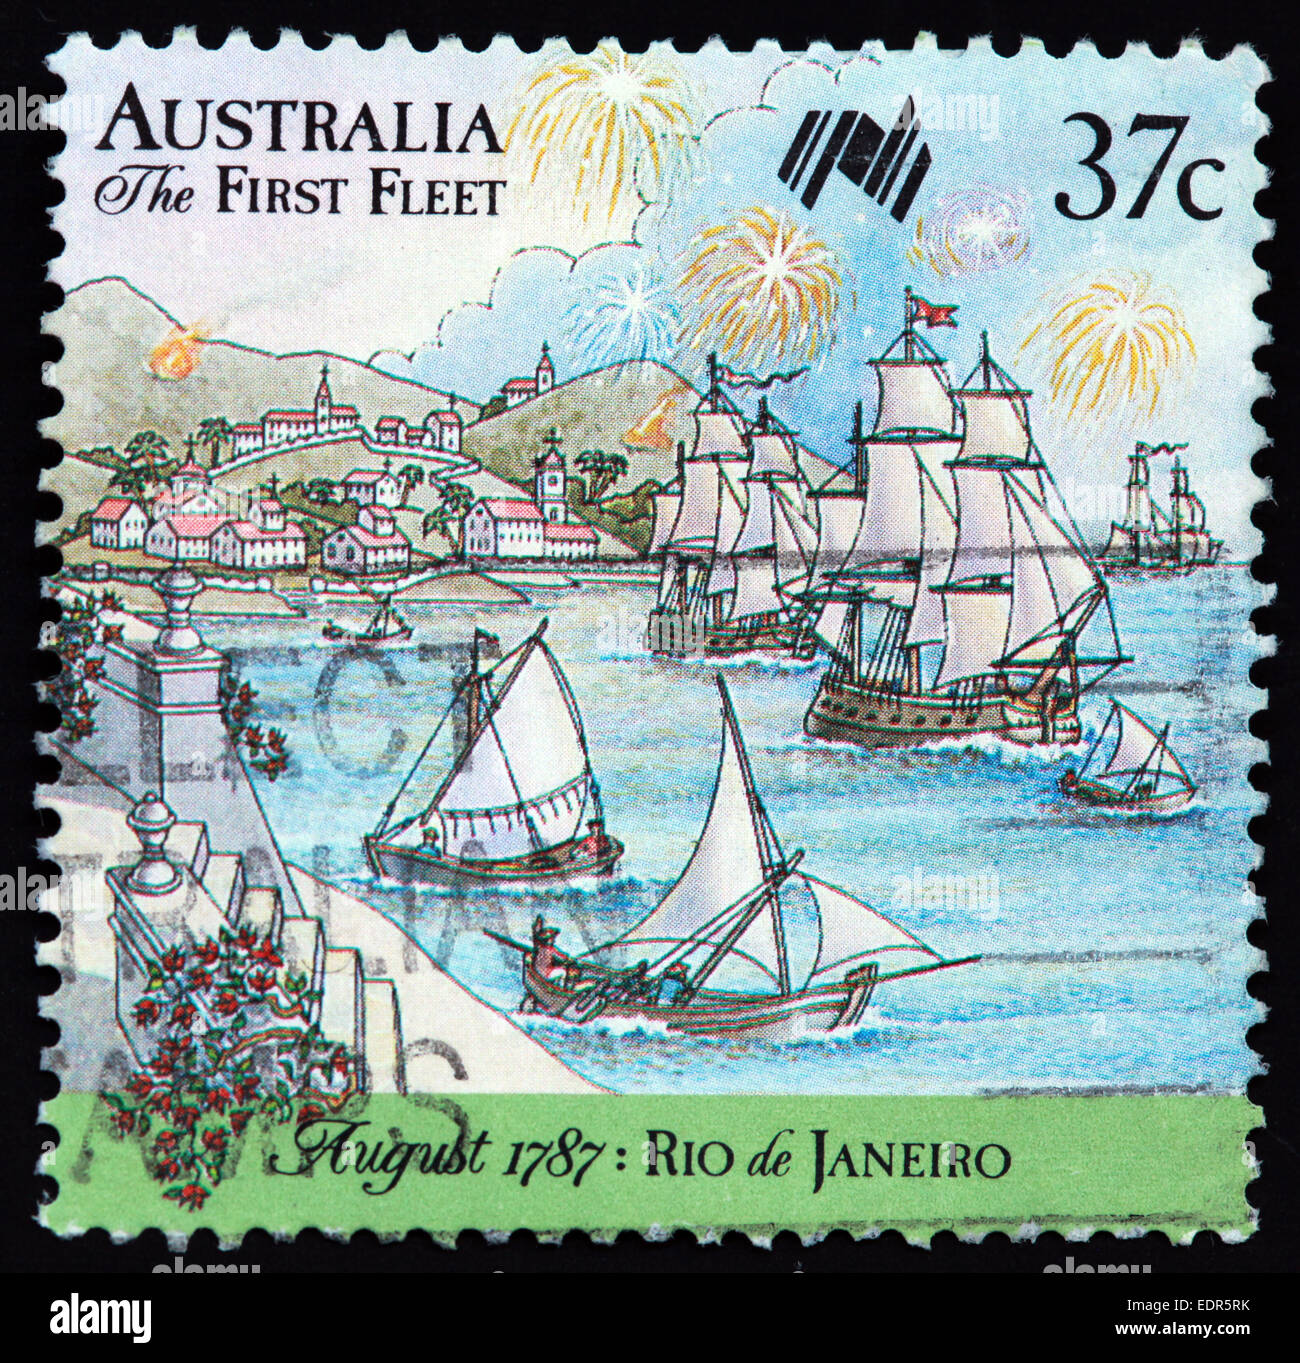 boat,sea,sand,galleon,warship,stamp,Used,and,postmarked,Australia,Austrailian,Stamp,post,posting,mail,hobby,perforation,mark,postage,stamp,print,stamp,cancelled,stamp,payment,correspondence,postman,collection,collector,philately,philatelist,letter,price,history,retro,Austr,Gotonysmith,sails,sail,sailing,clipper,warship,post,posting,mail,hobby,perforation,mark,postage,stamp,print,stamp,cancelled,canceled,stamp,payment,correspondence,postman,collection,collector,philately,philatelist,letter,price,history,retro,Australian,Vintage,delivery,date,relationship,communication,Oz,Australia,DownUnder,classic rare unique Austrailian financial,investment,invest,value,British,empire,nation,canceled,printed on black background,close-up,closeup,close,up,sent,send,philately,mailing,shipping,postoffice,office,isolated,circa,special,colour,color,postmarked,marked,airmail,aged,antique,retro,cutting,historic,old,stamps,collection,stamp collection,album,Timbre,Sello,Stempel,Selo,Down Under,Black background